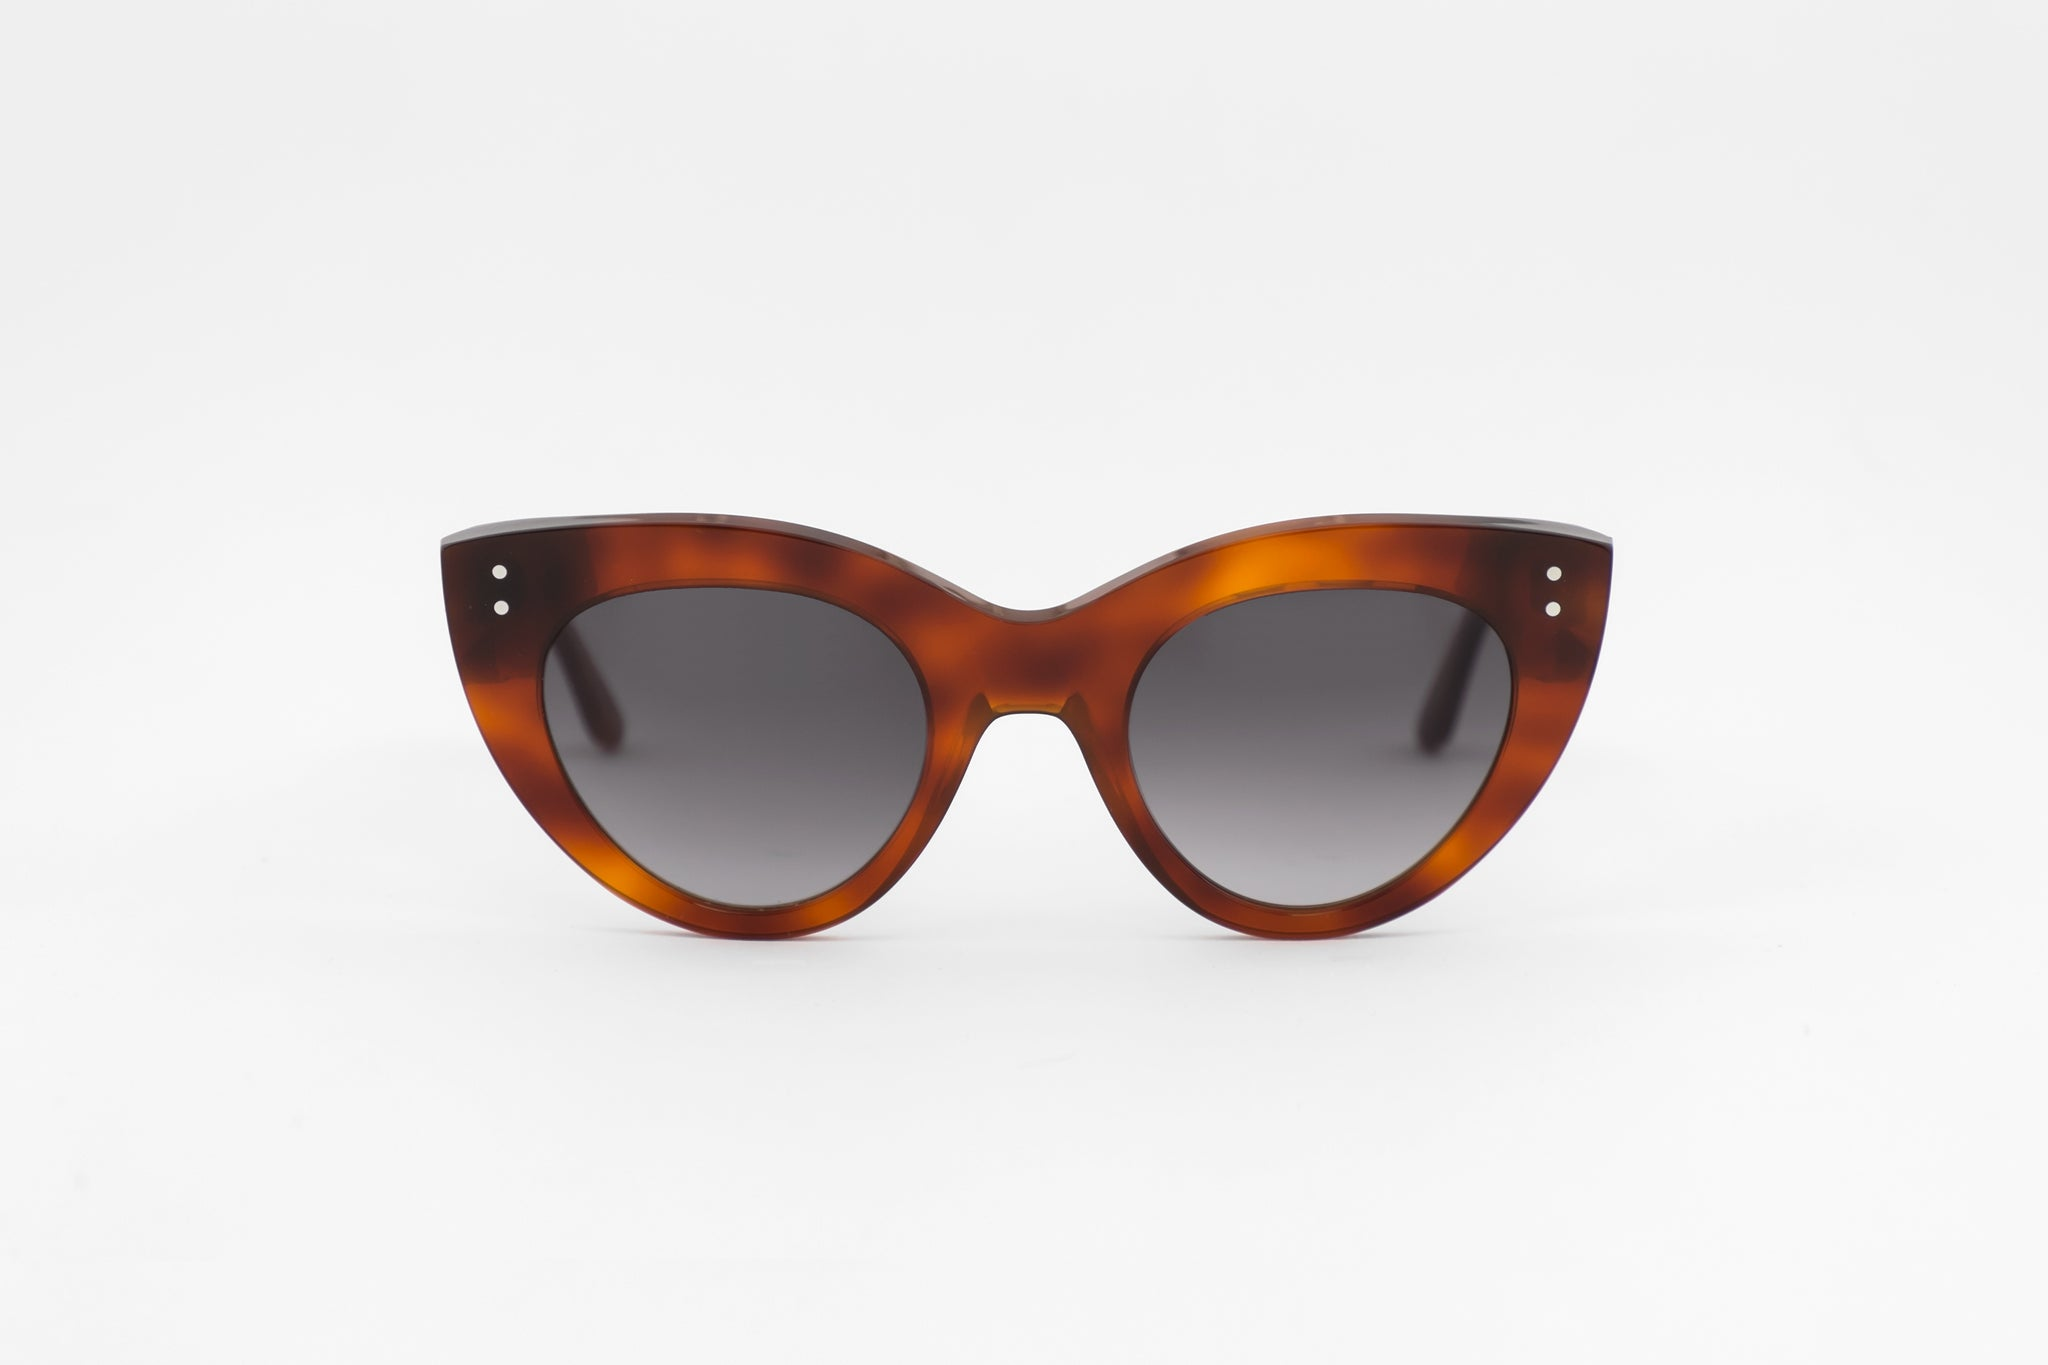 monokel eyewear sunglasses june amber / grey gradient lens